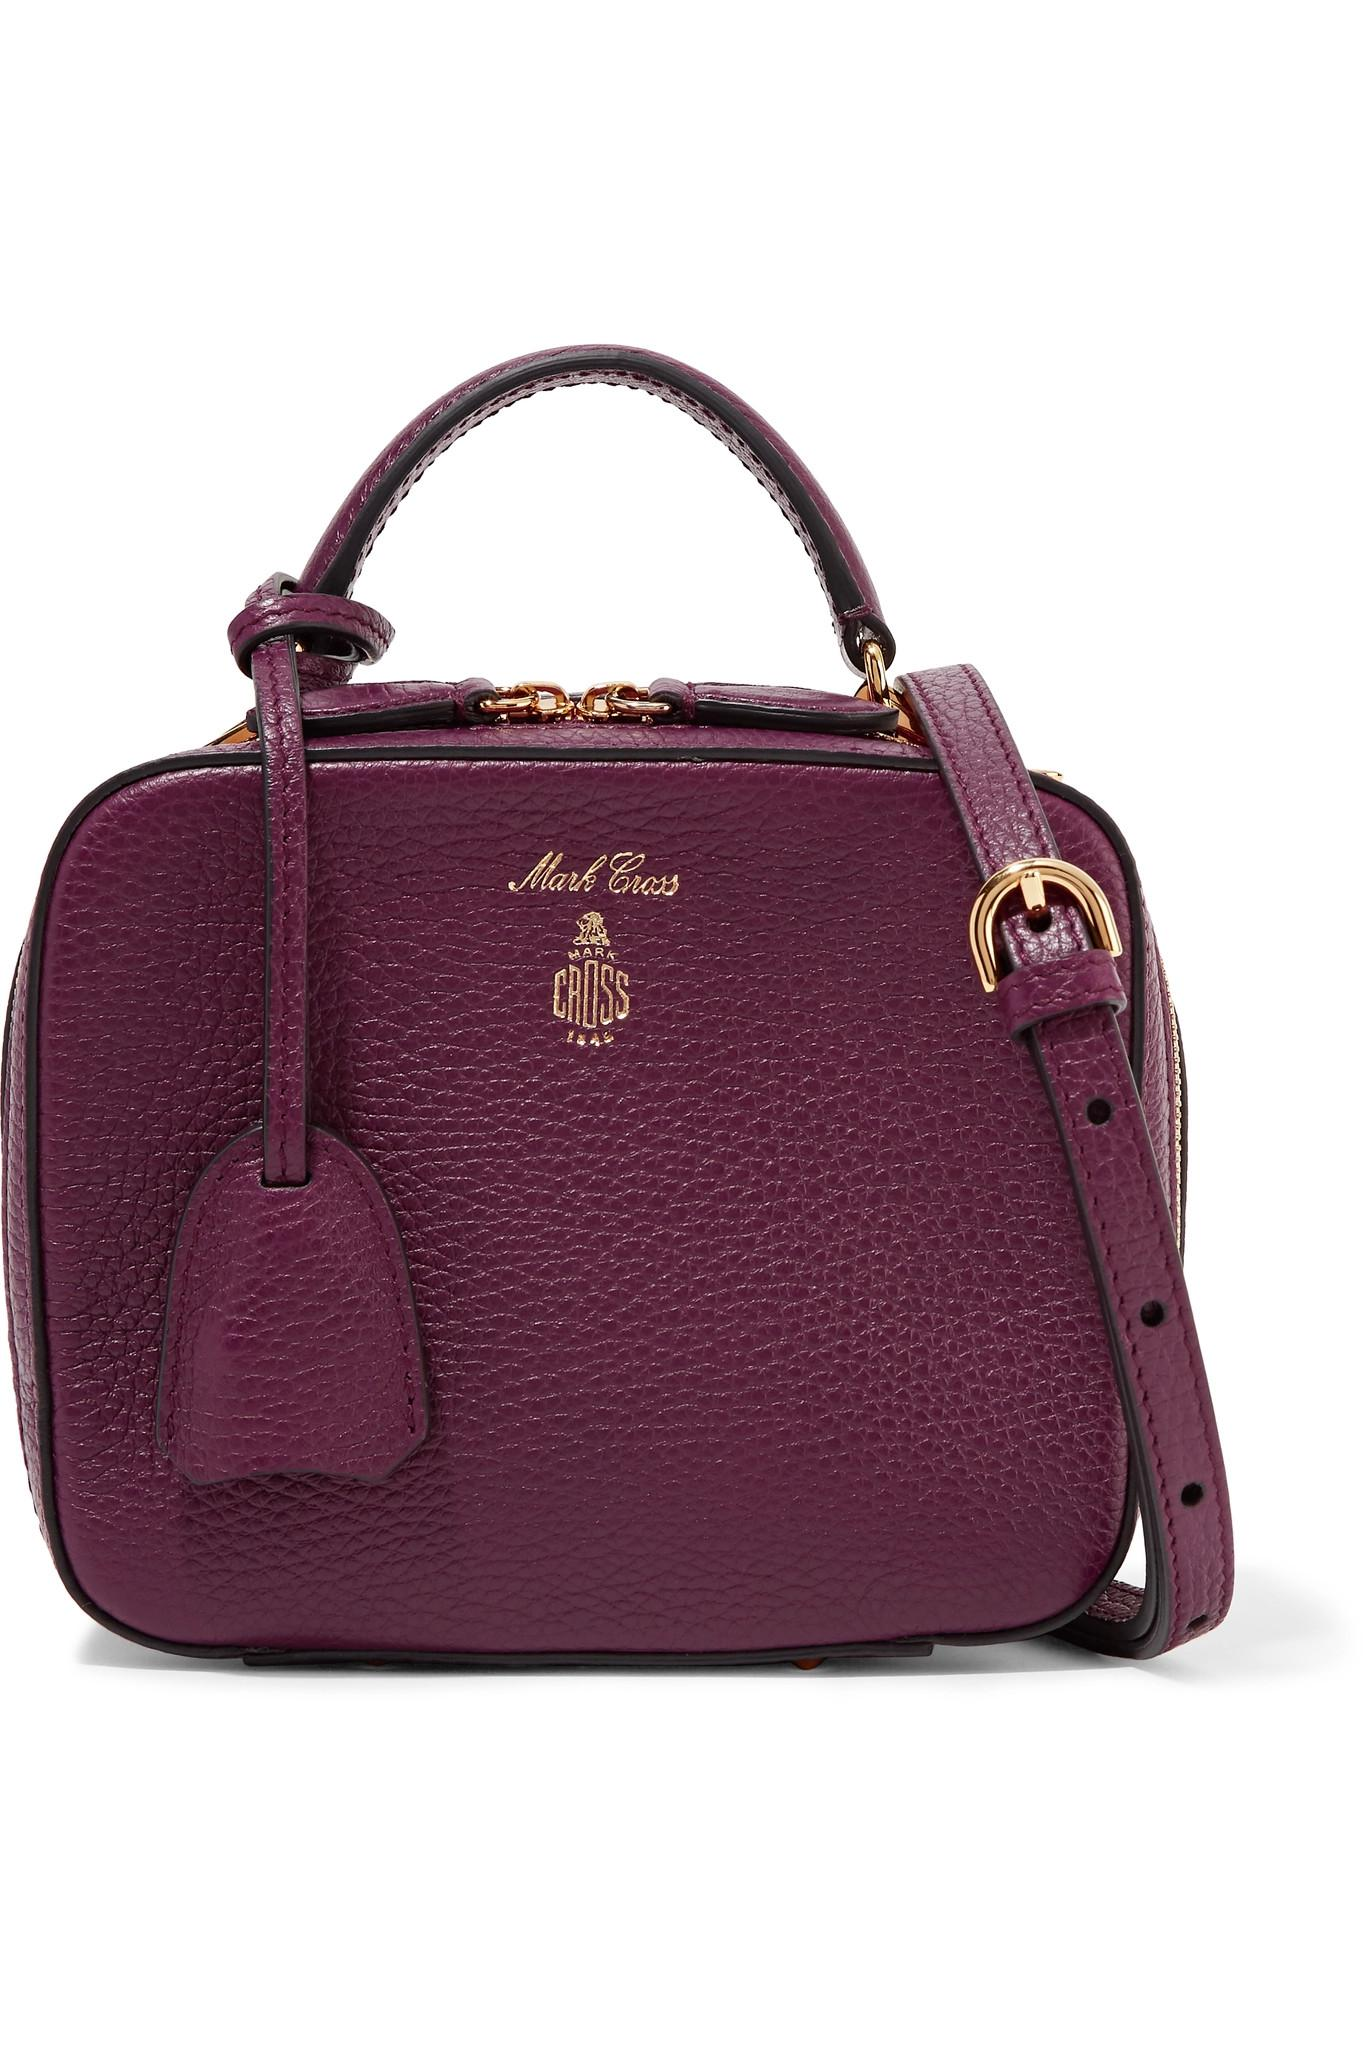 Lyst - Mark Cross Laura Baby Textured-leather Shoulder Bag in Purple 4fe4432a64